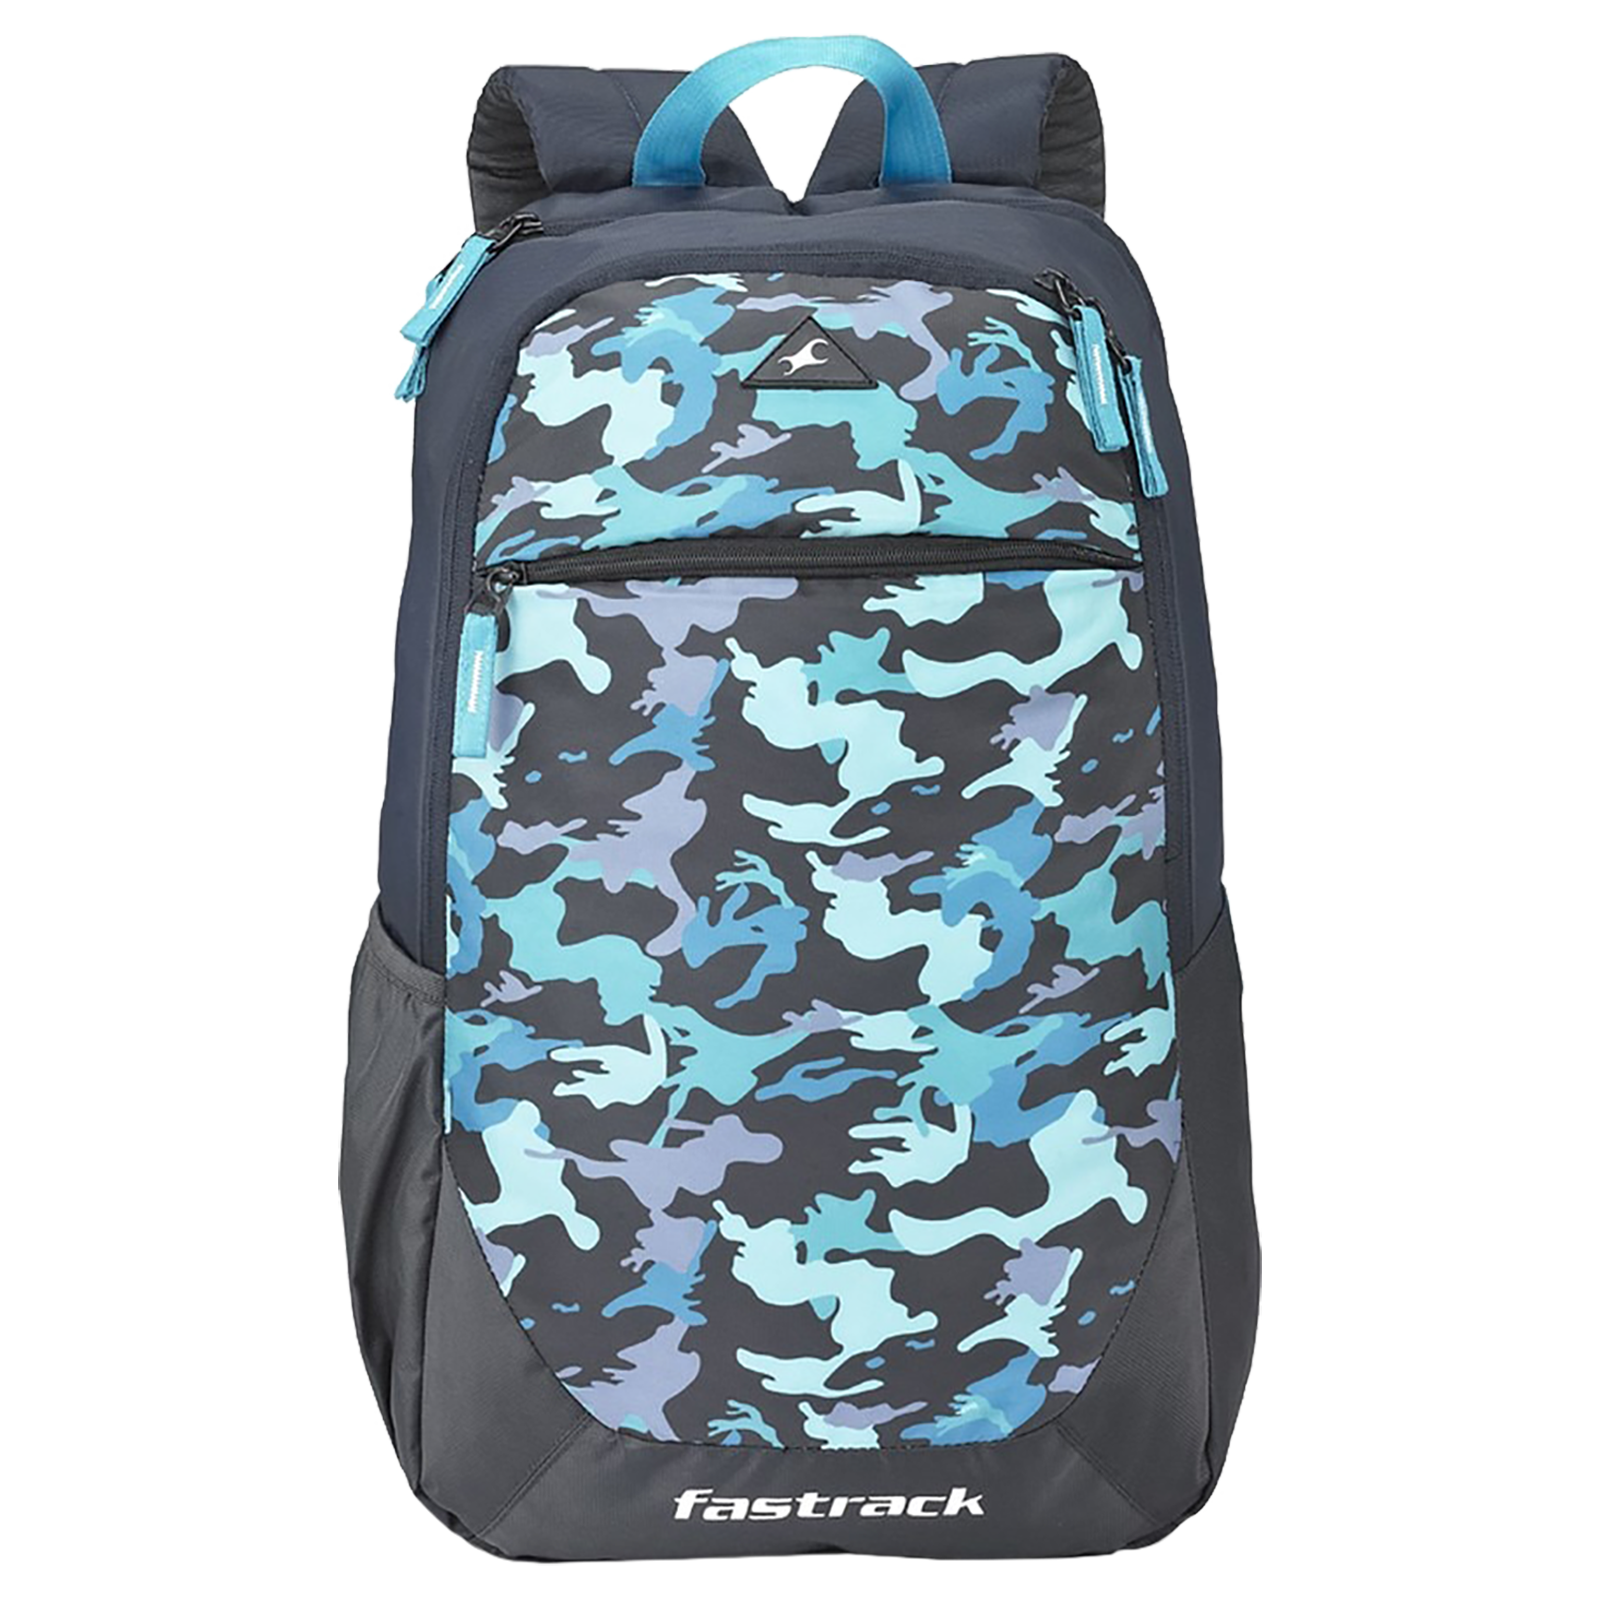 Fastrack Freerail Ergolight 30 Litres Polyester Backpack (Back Padding, A0793NBL02, Blue)_1